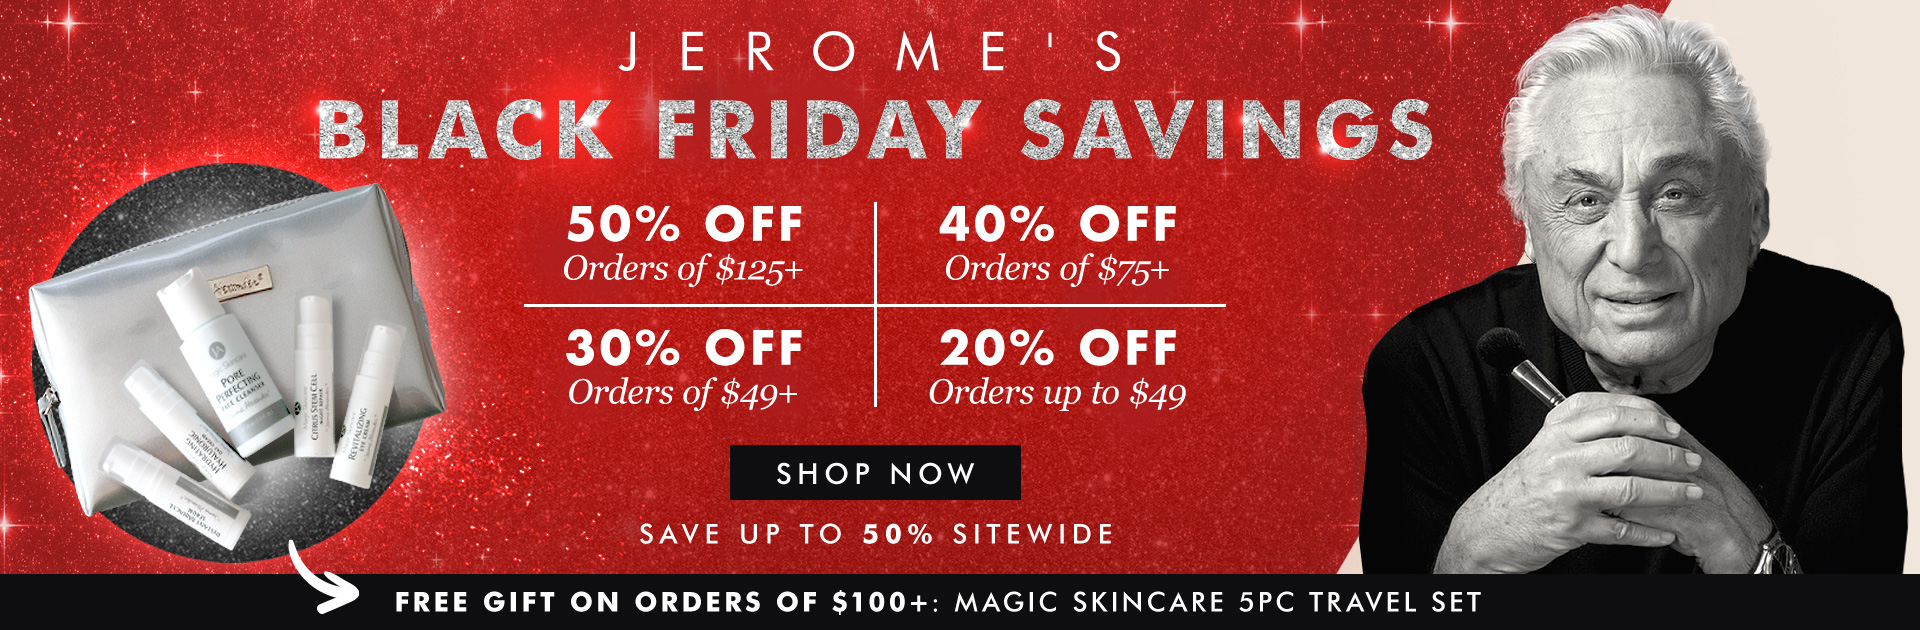 Black Friday Savings of up to 50% off site wide plus free gift